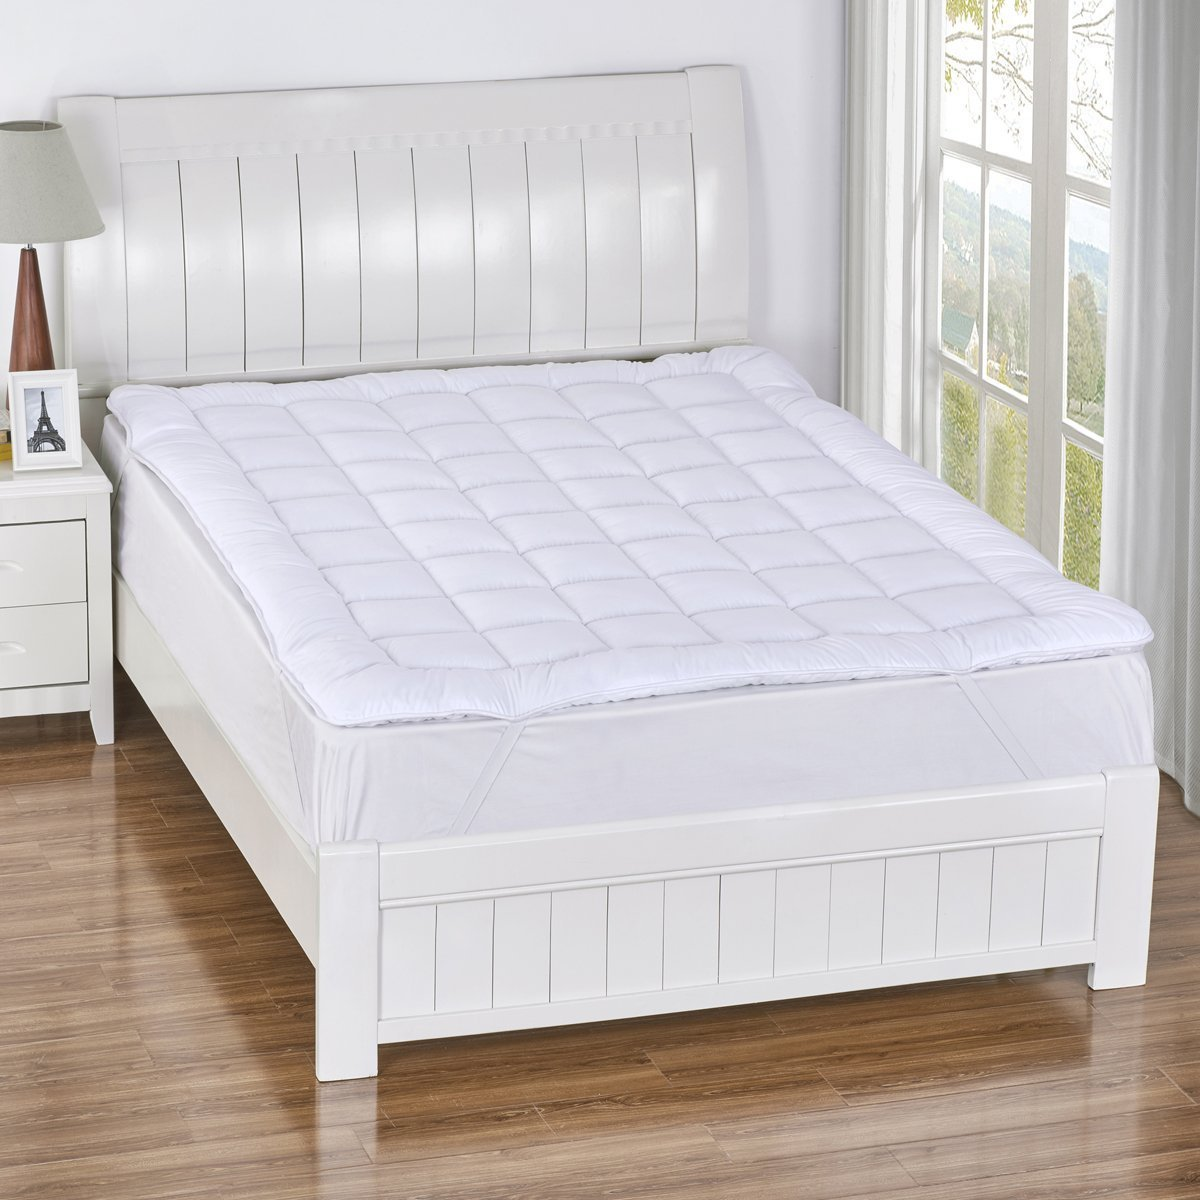 mattress topper bed pad cover hypoallergenic soft pillow top soft thick 2 queen 825624627392 ebay. Black Bedroom Furniture Sets. Home Design Ideas